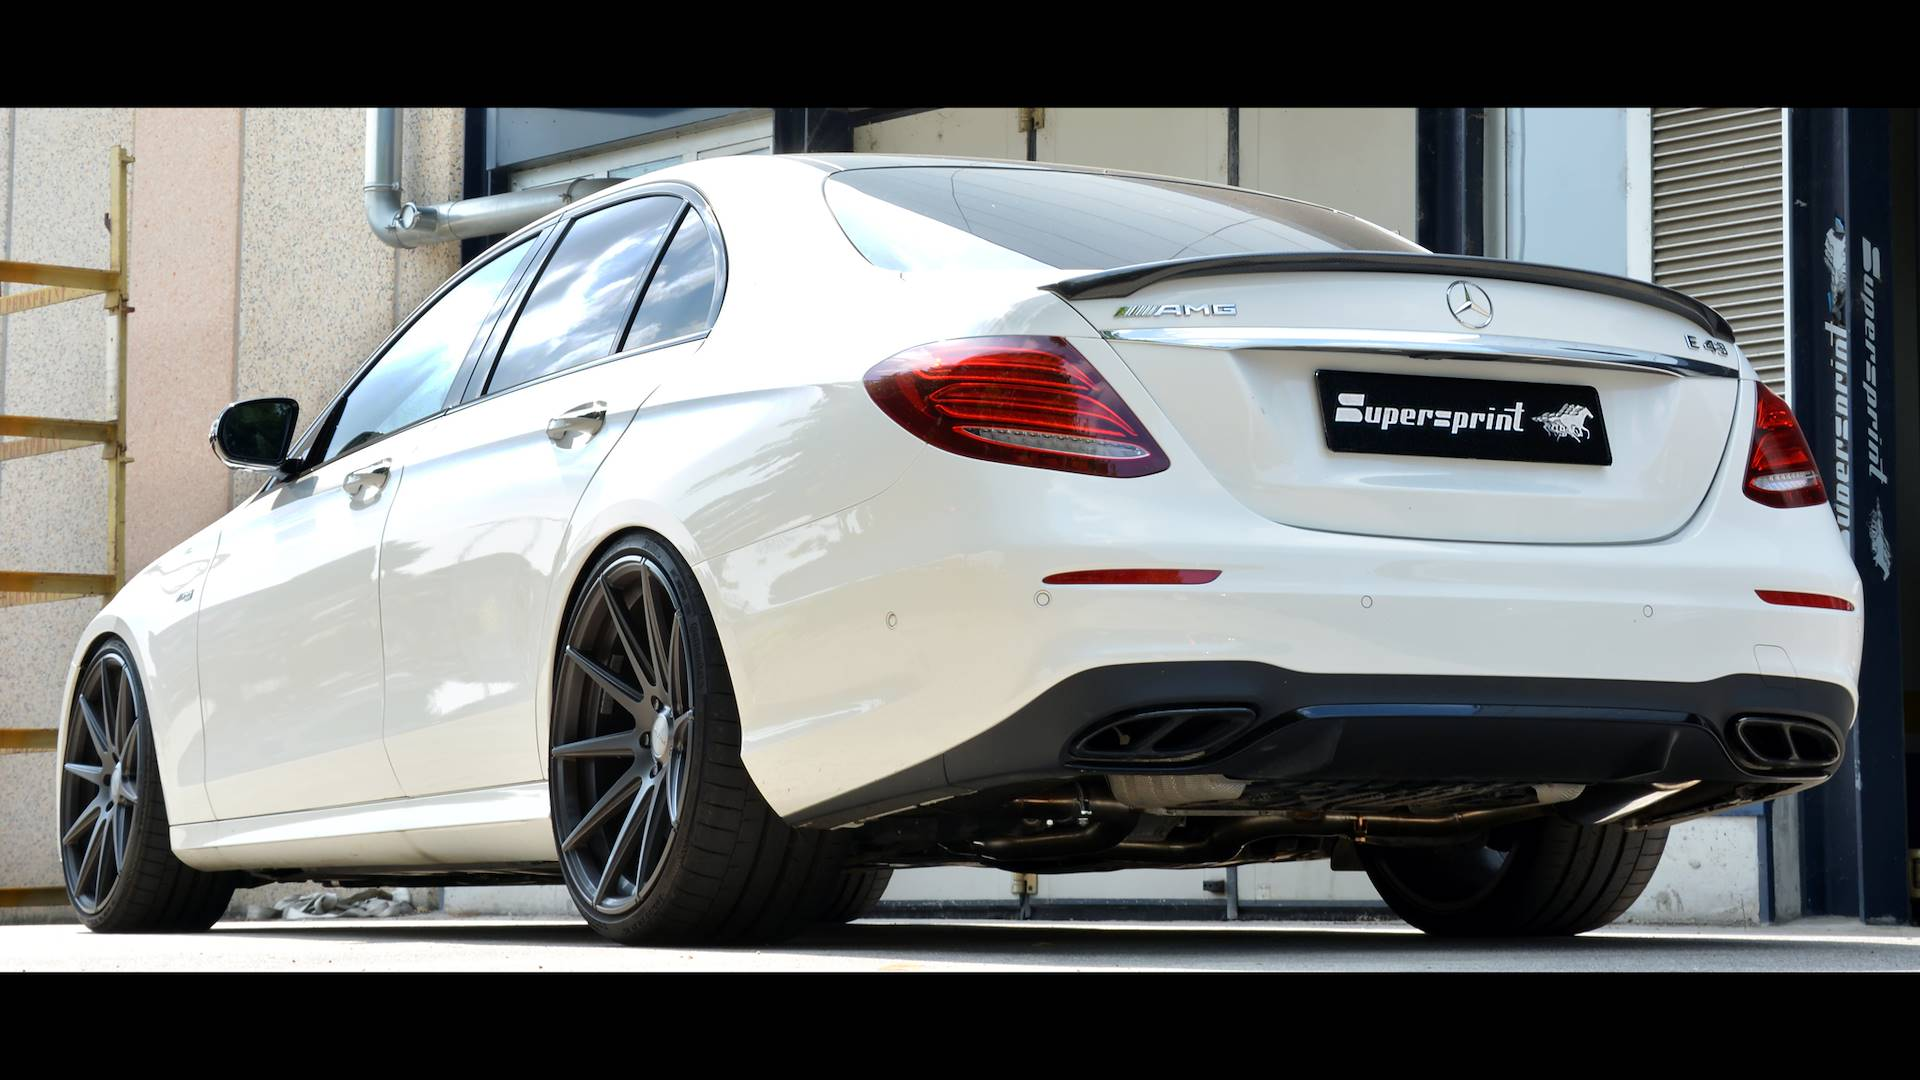 Mercedes W213 E 43 AMG - Supersprint full exhaust system